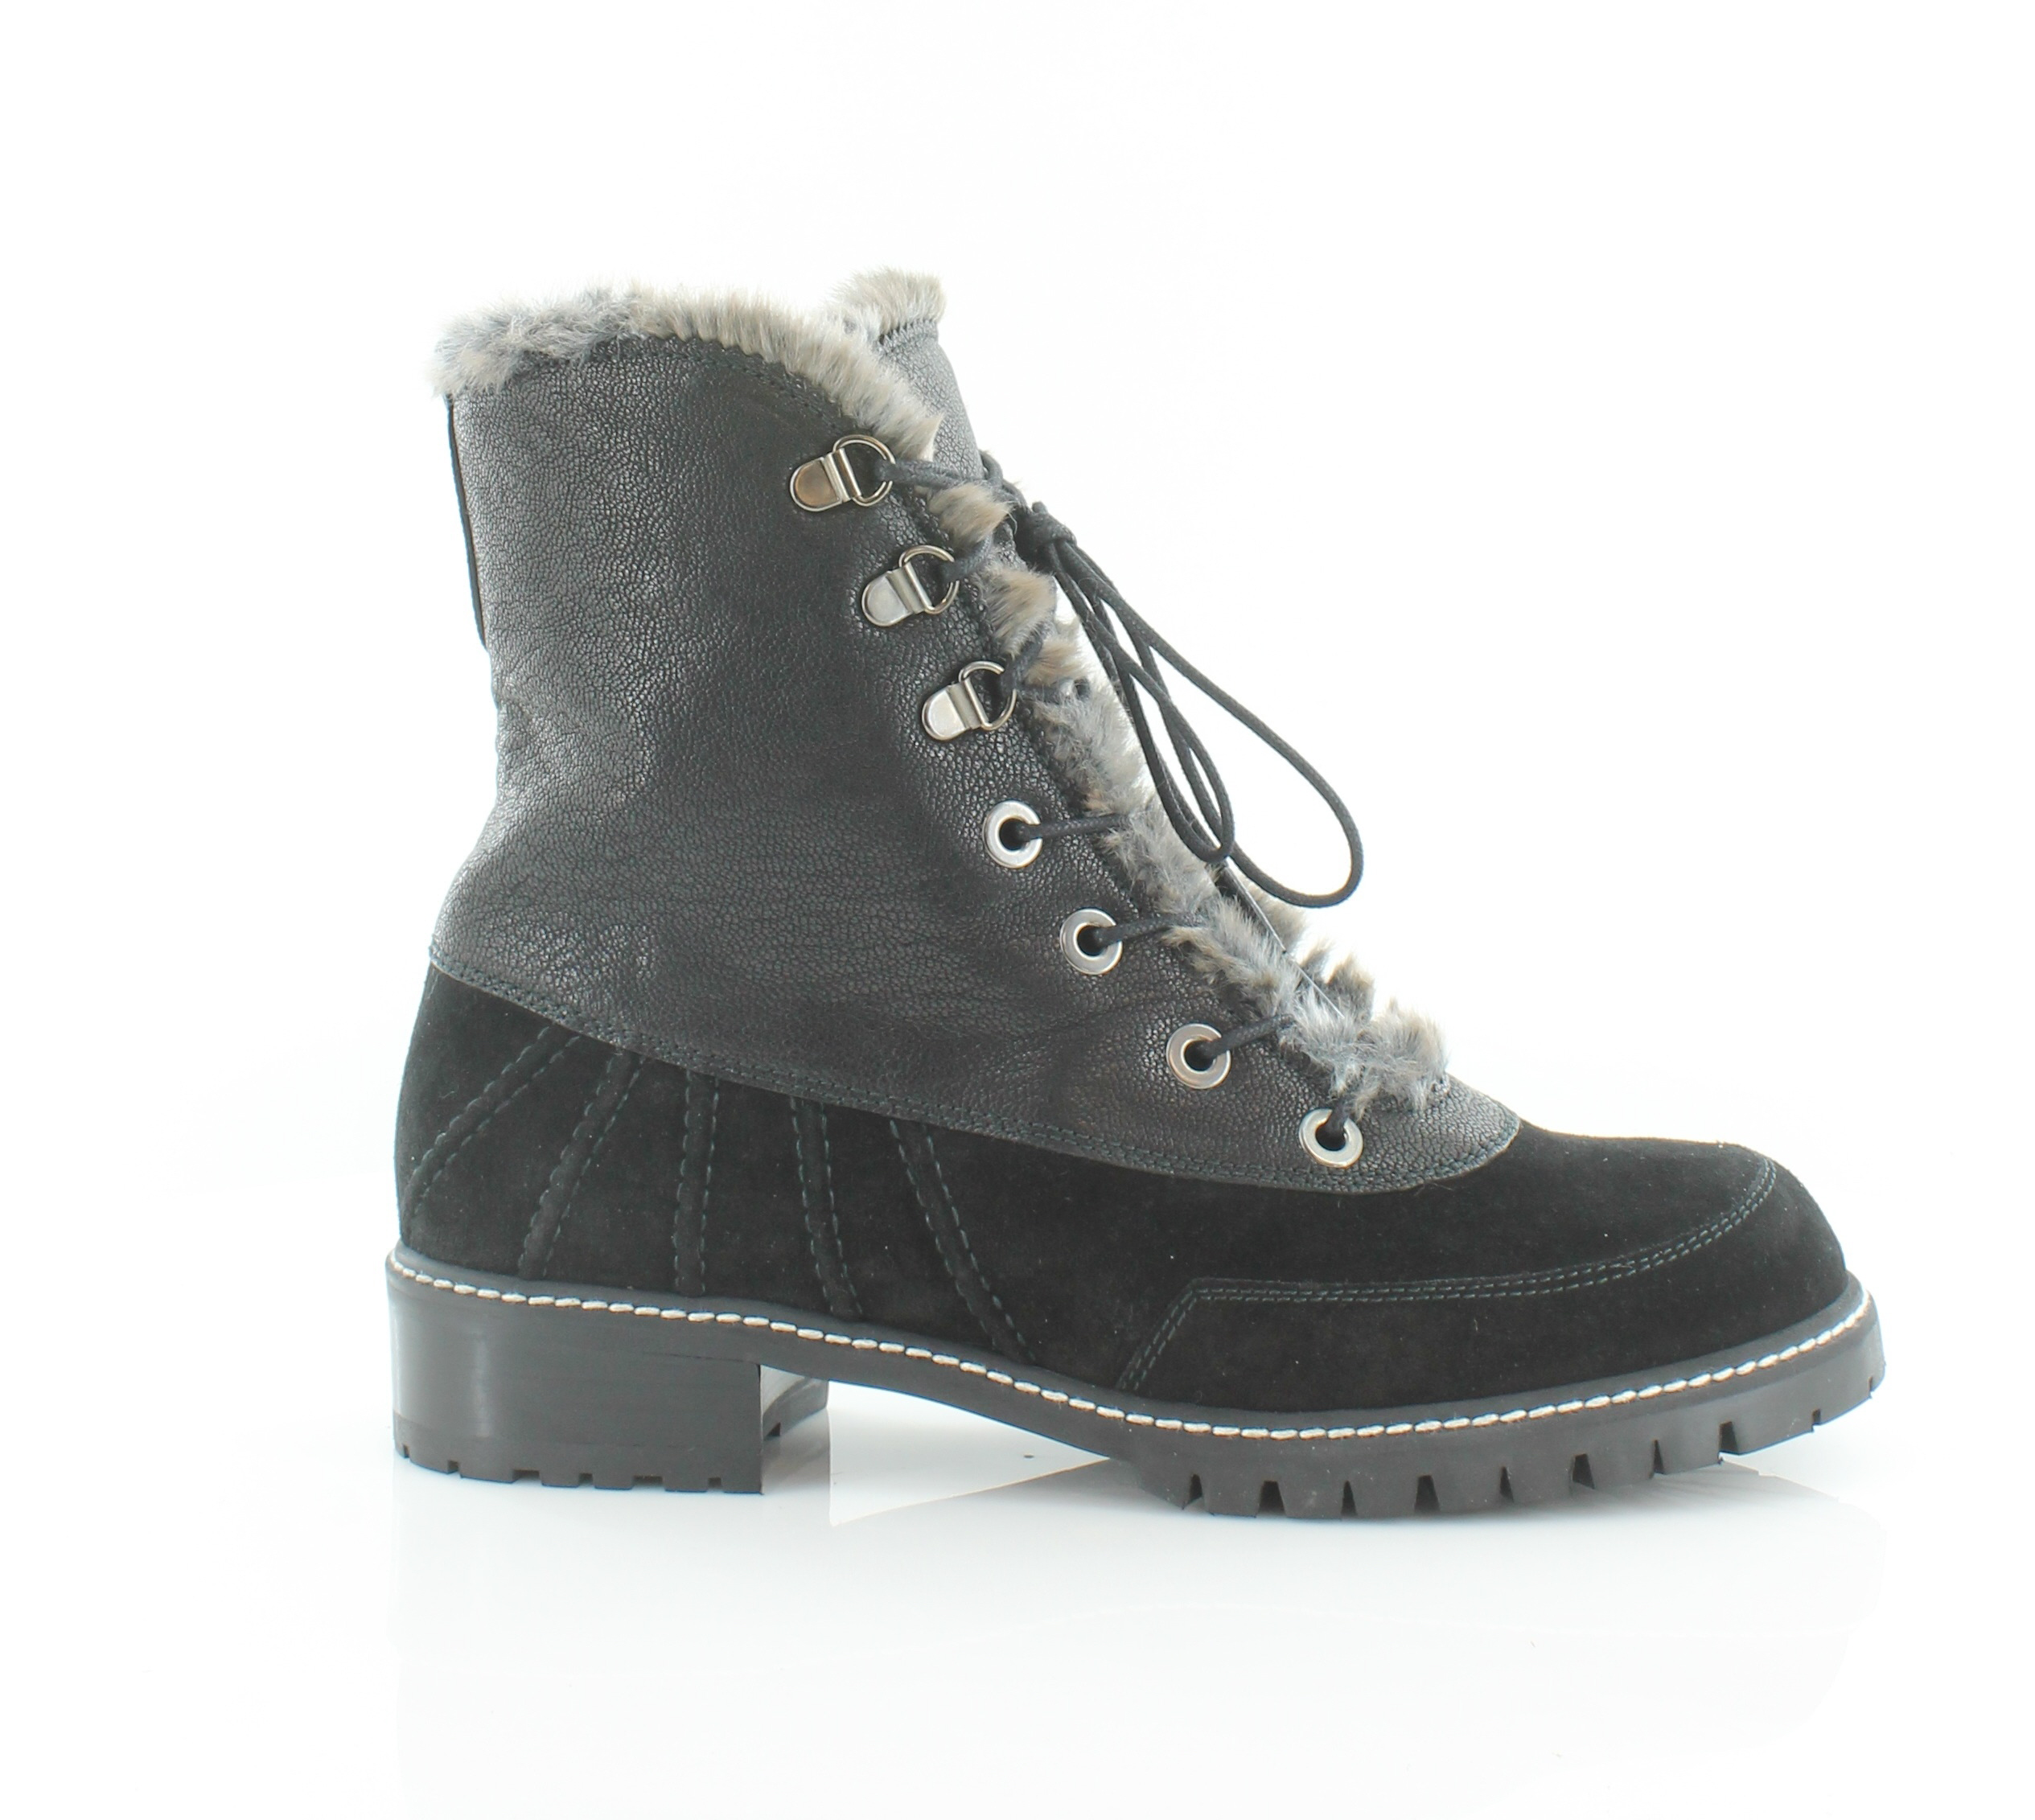 Stuart Weitzman Forest Women's Boots Economical, stylish, and eye-catching shoes